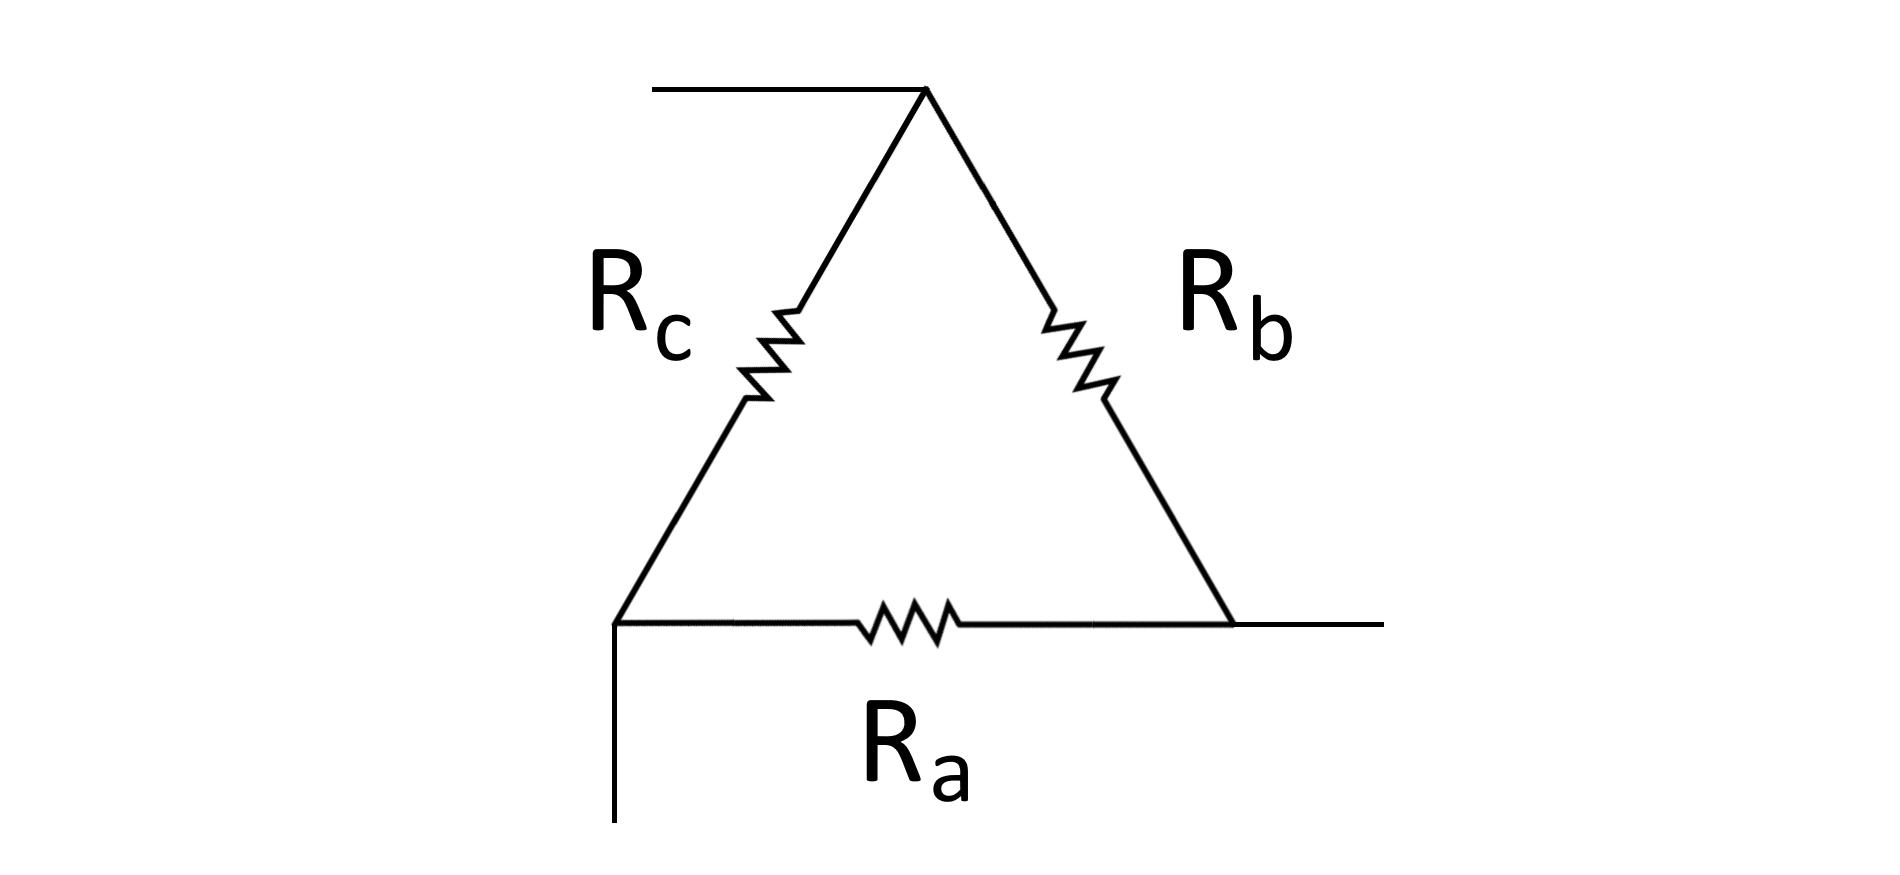 Simple diagram of resistors (represented by zigzag lines) forming a triangle or delta configuration.